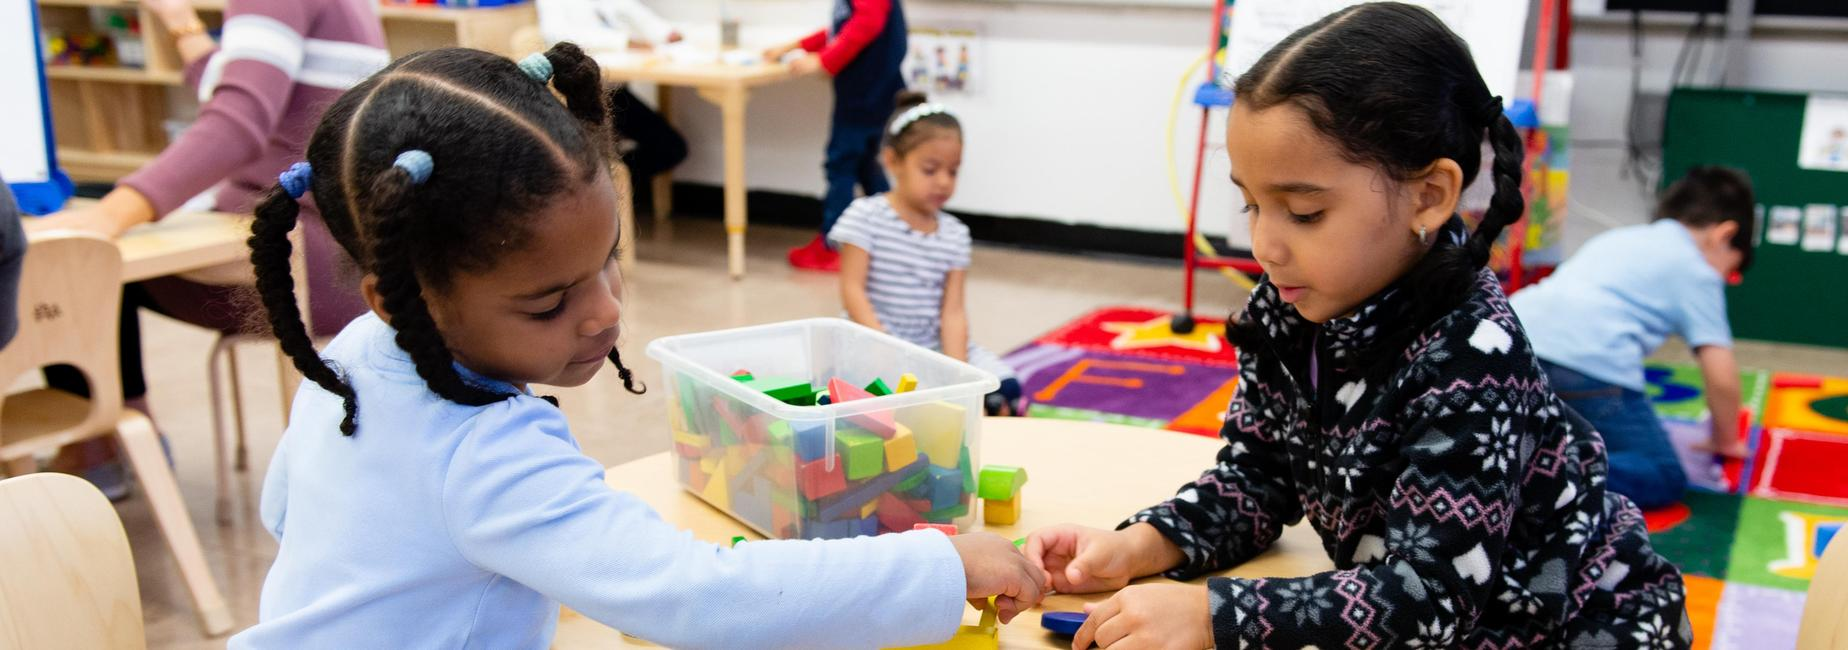 Two pre-k students playing with blocks at a table.